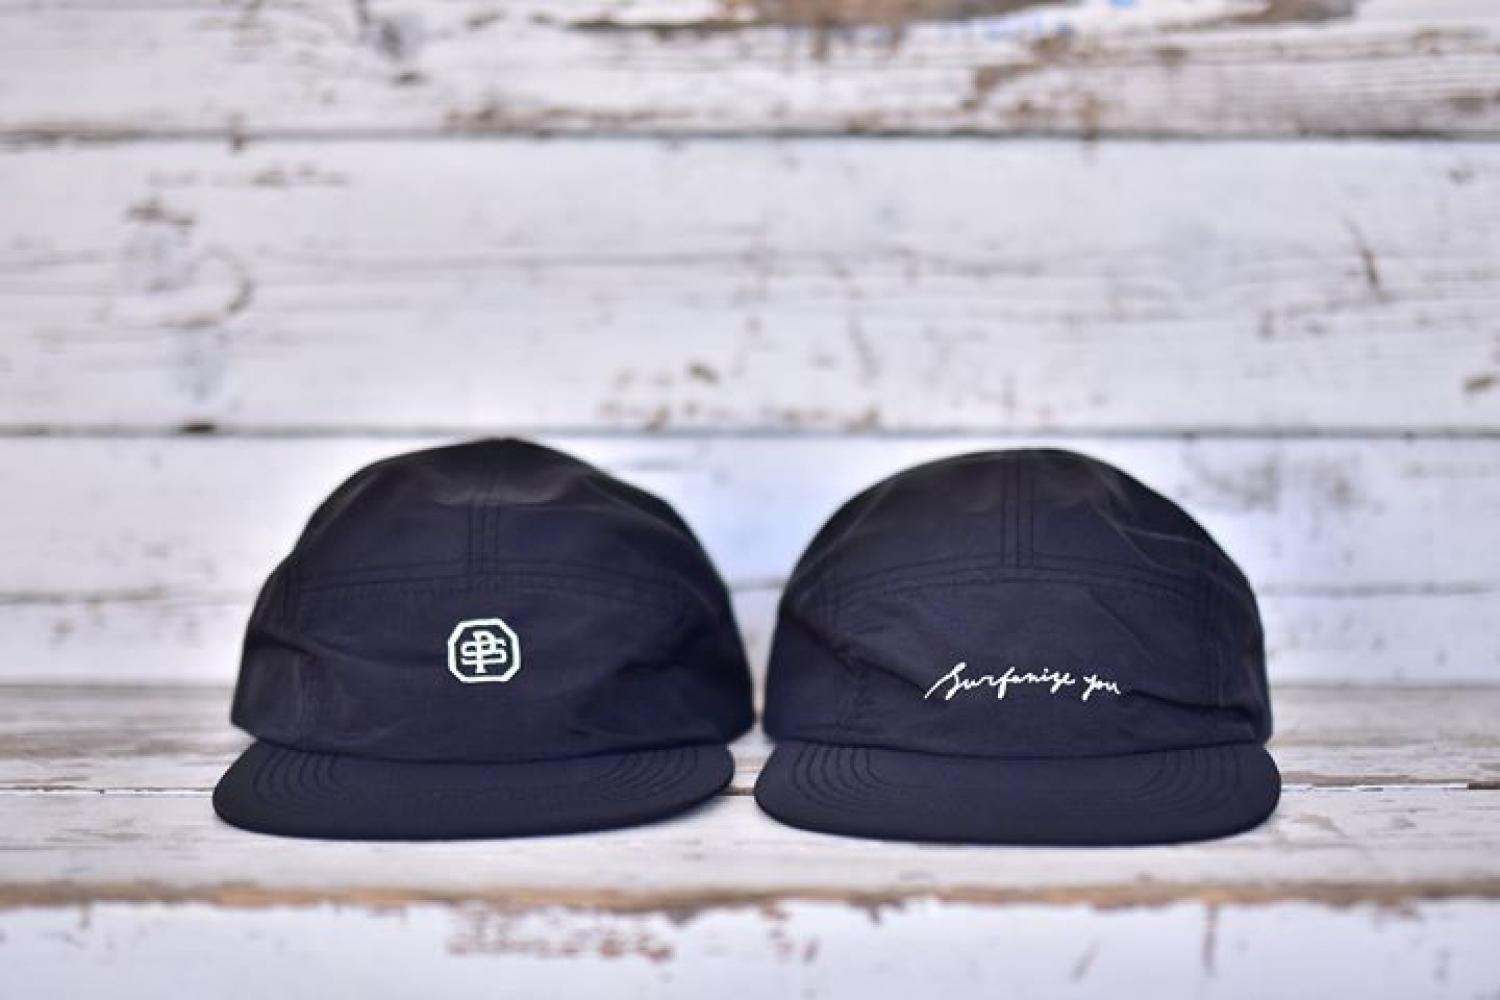 P SUPPLY. SURF JET CAP